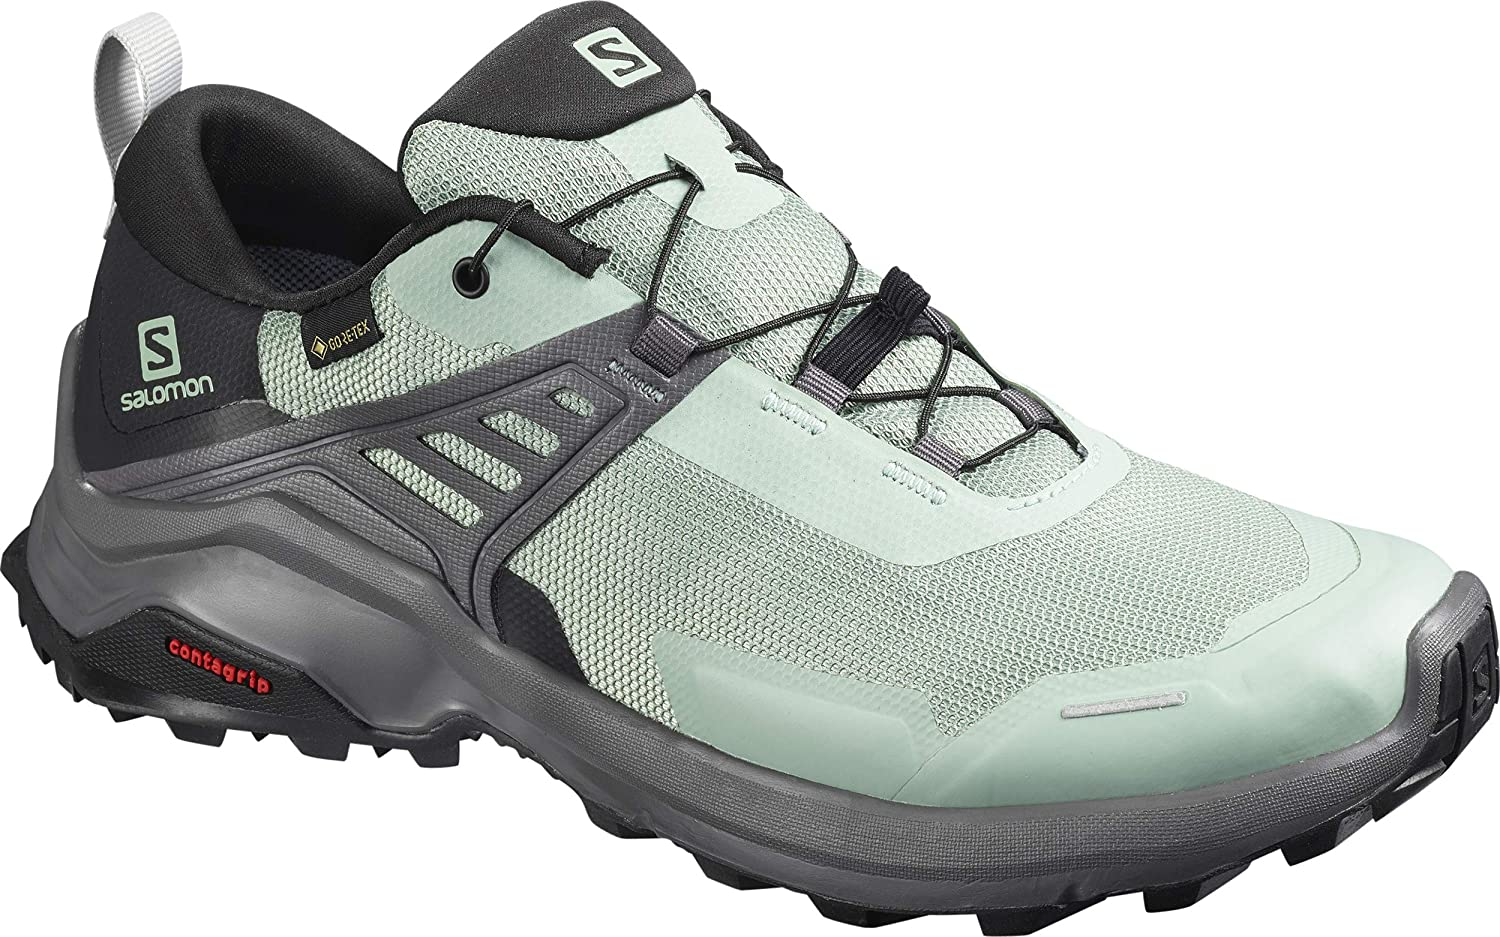 SALOMON Damen Shoes X Raise GTX Wanderschuhe: